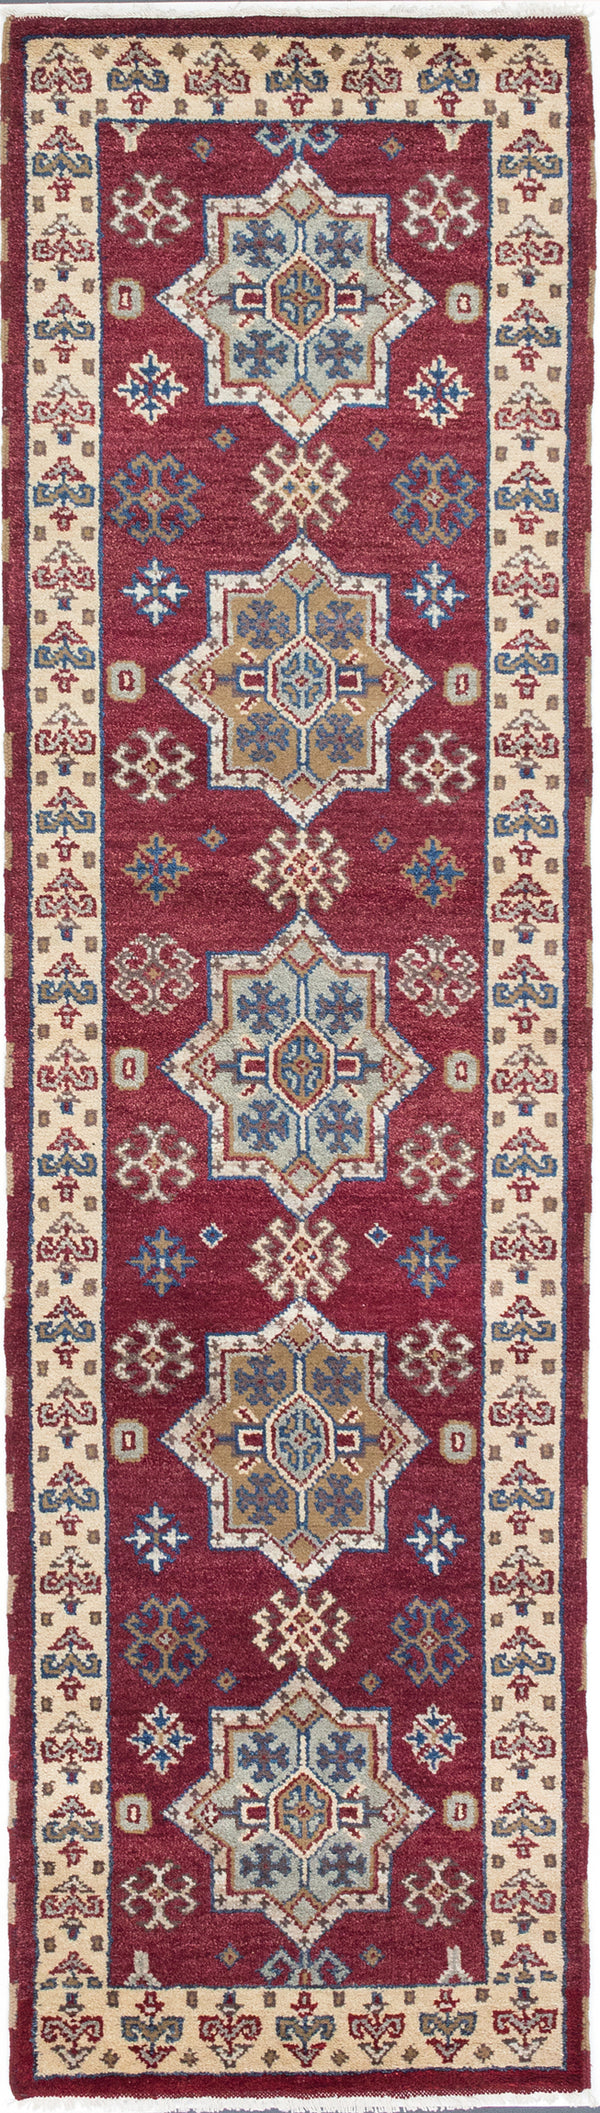 "Hand-knotted Indian Traditional Royal-Kazak Runner rug  Burgundy 8'9 x 9'10"" """